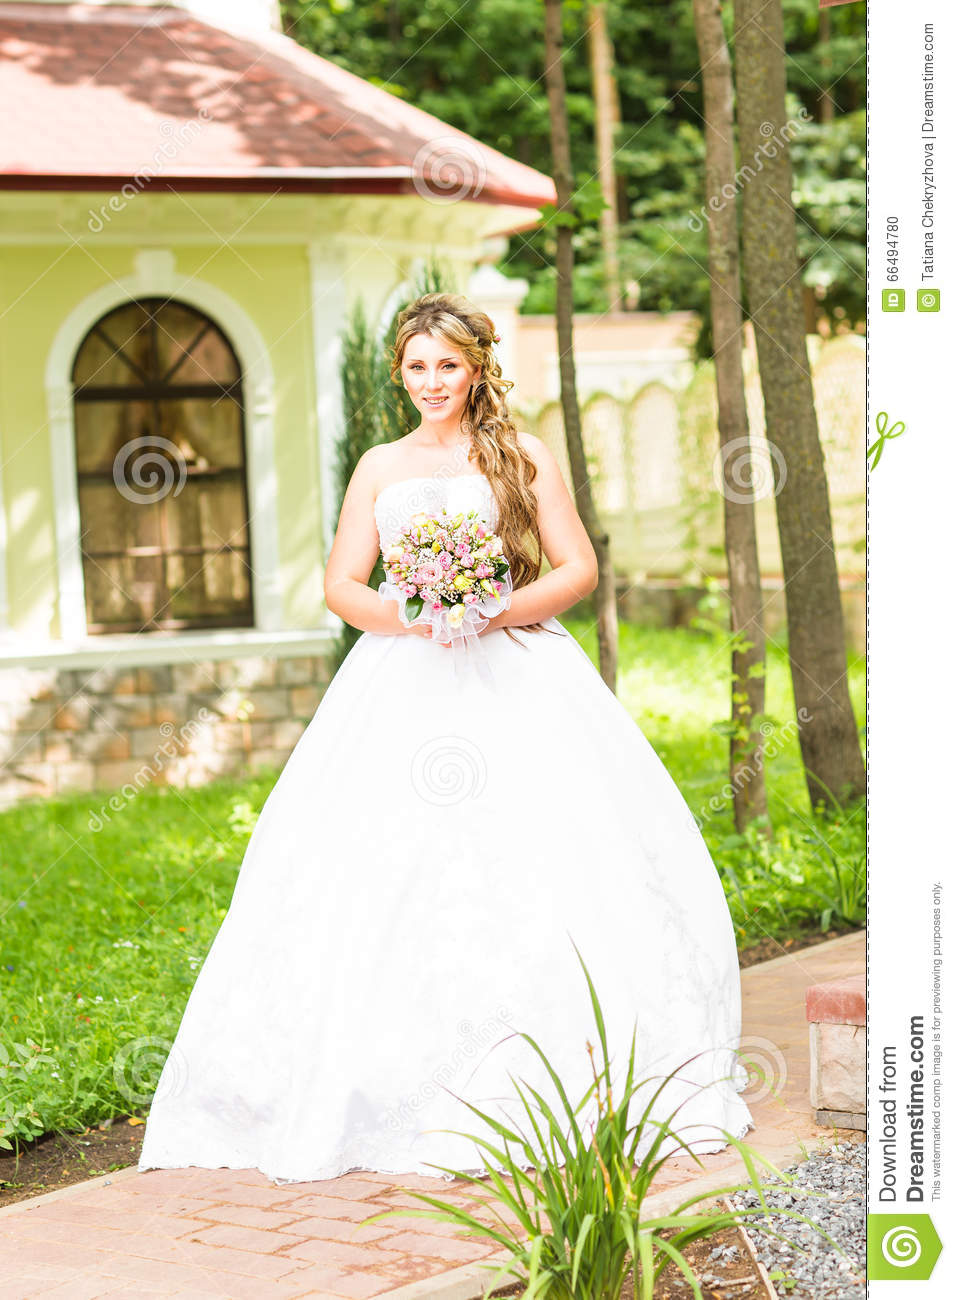 Beauty Bride In Bridal Gown With Bouquet And Lace Veil On The Nature ...